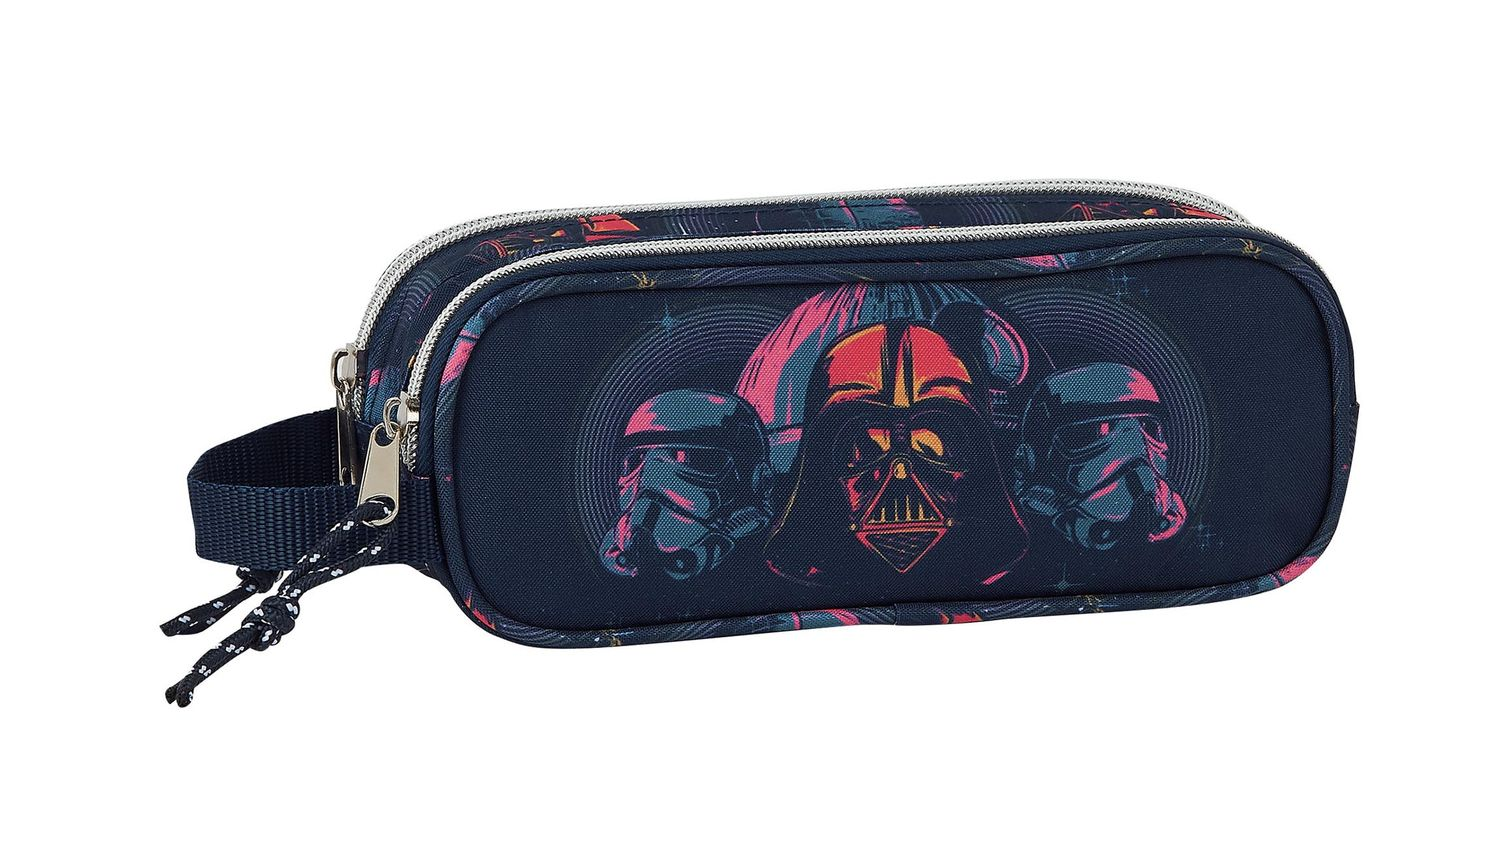 STAR WARS DEATH STAR Double Pencil Case 21 cm – image 2